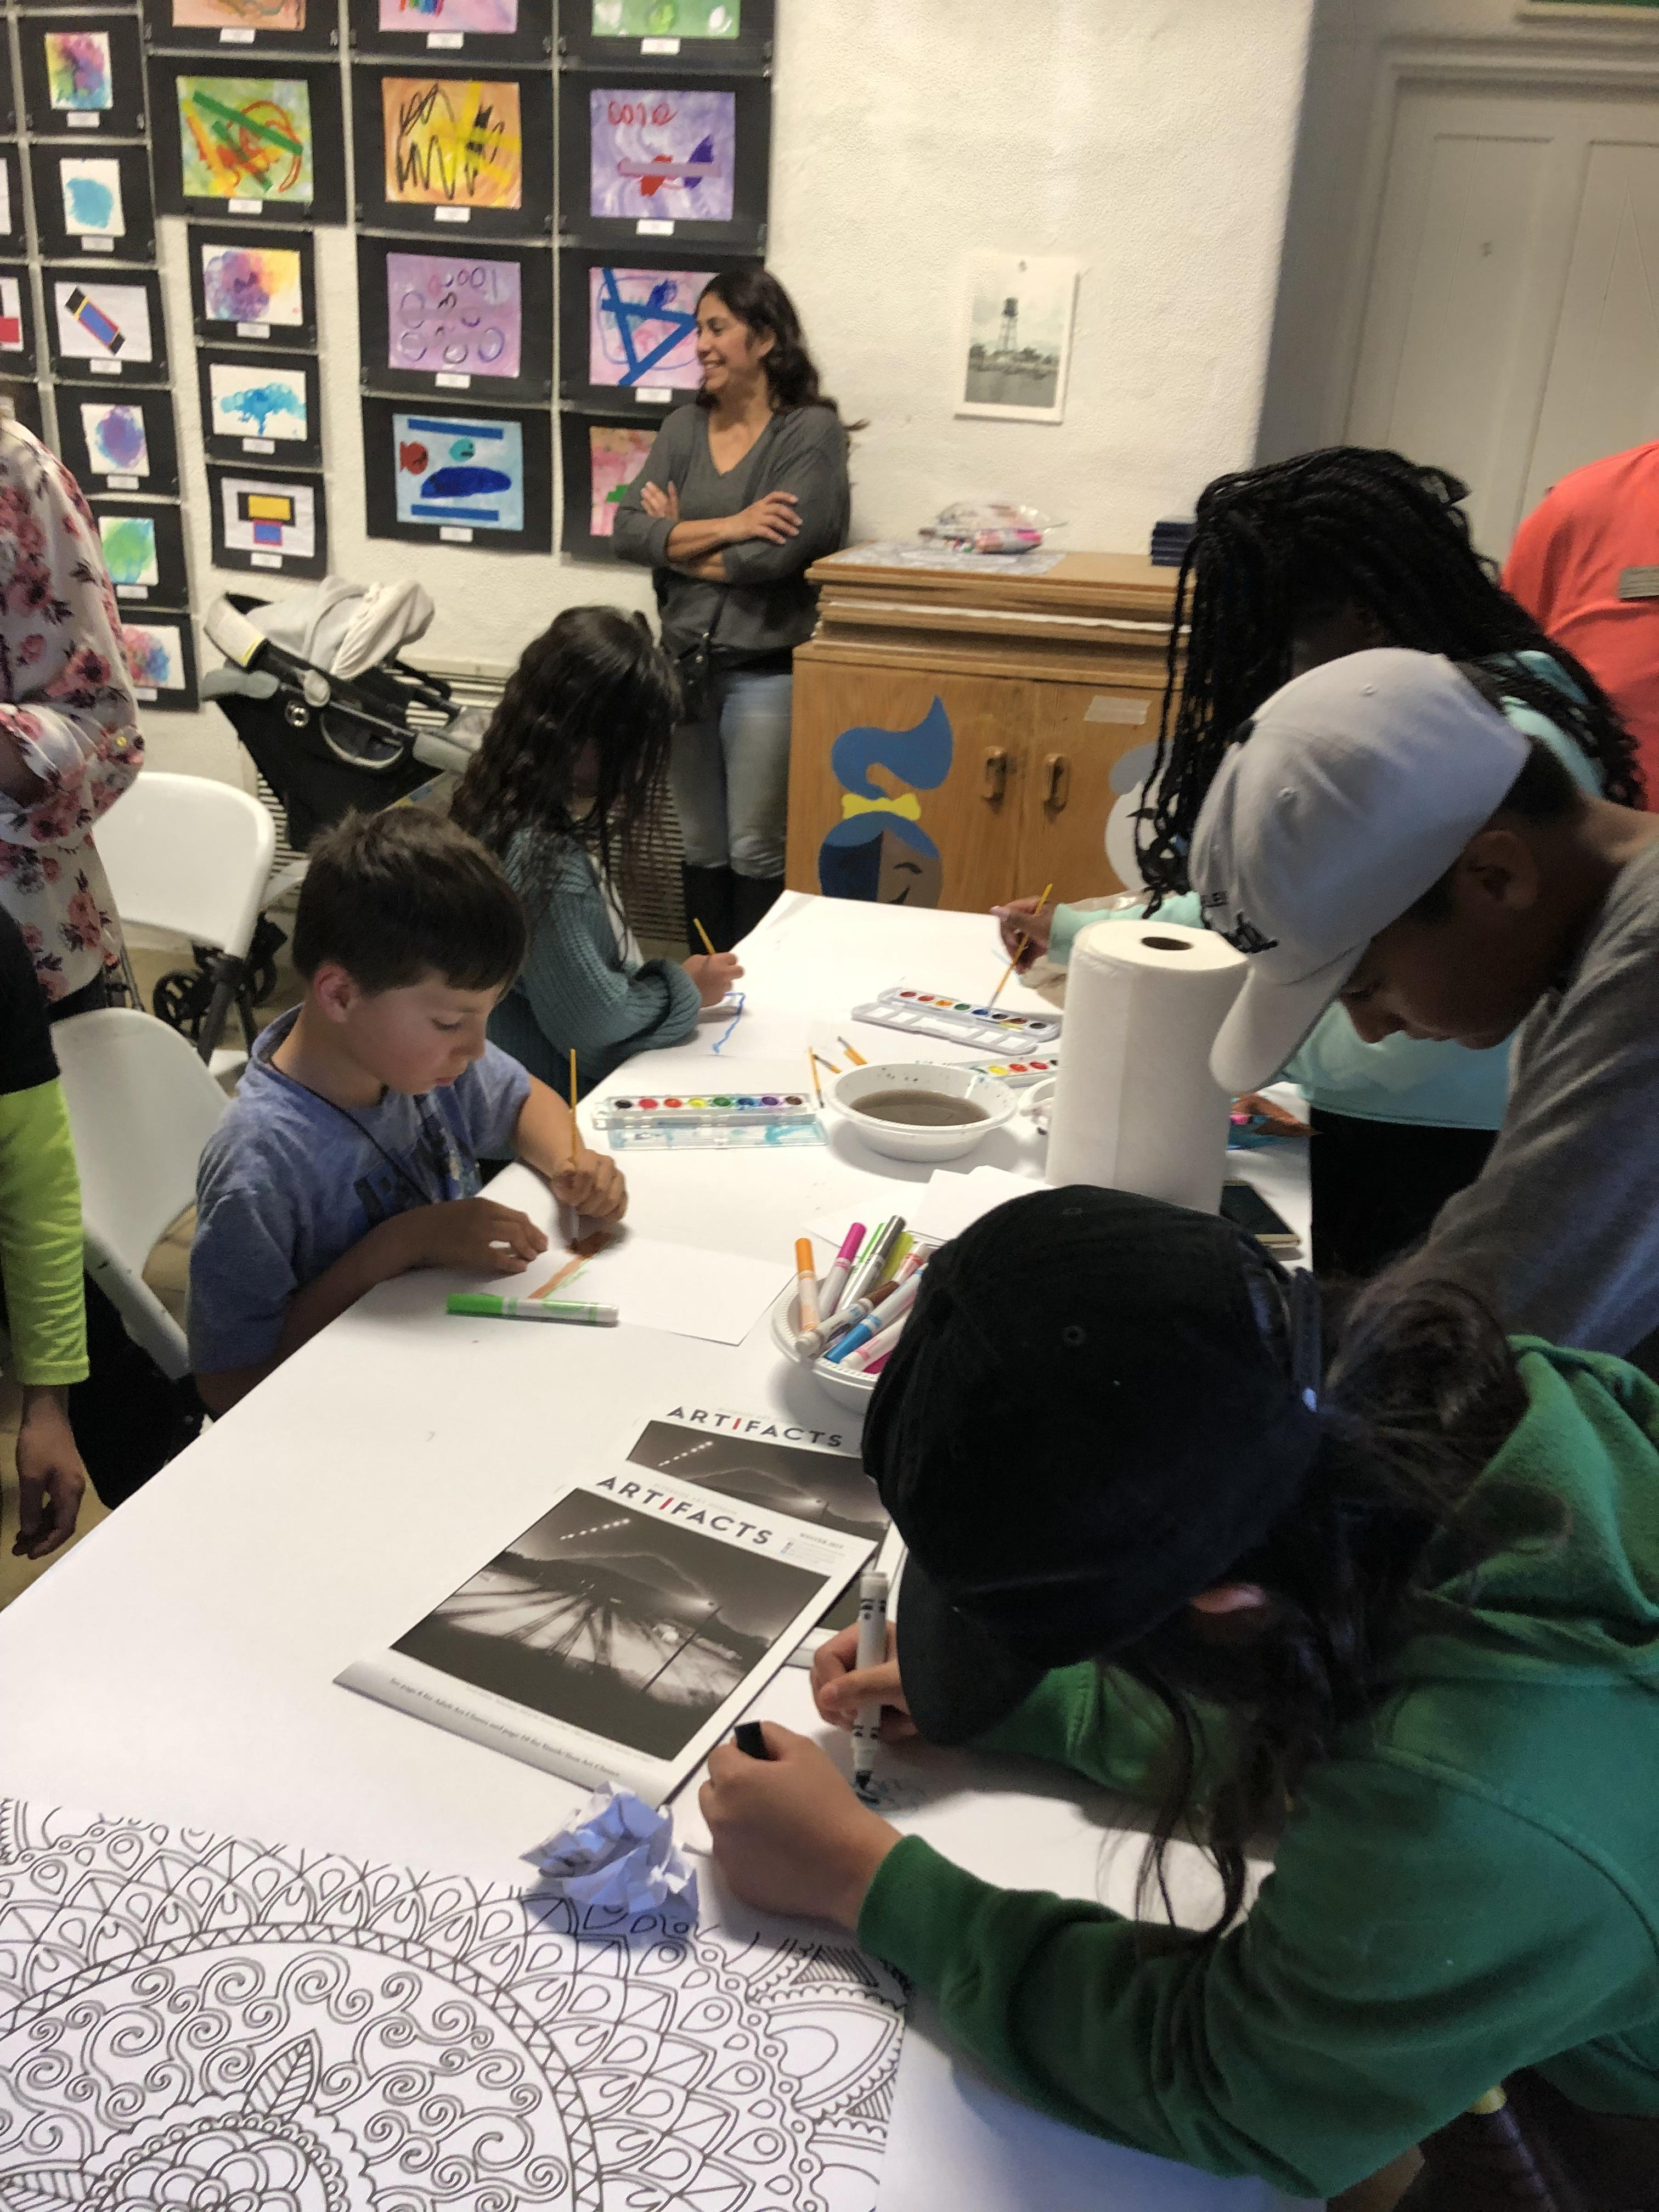 Students Painting at the Art Show